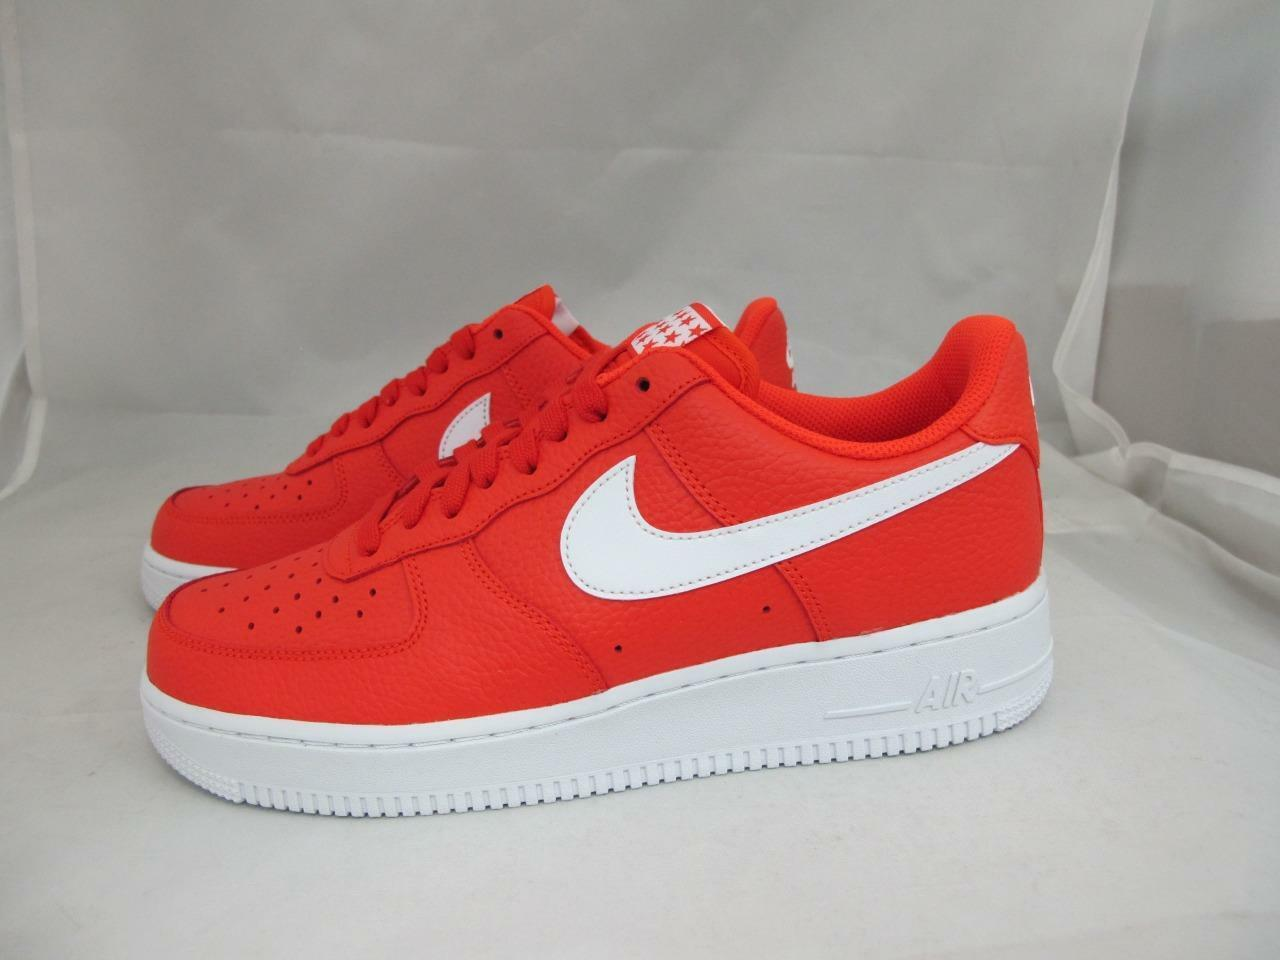 NEW MEN'S NIKE AIR FORCE 1 '07 AA4083-800